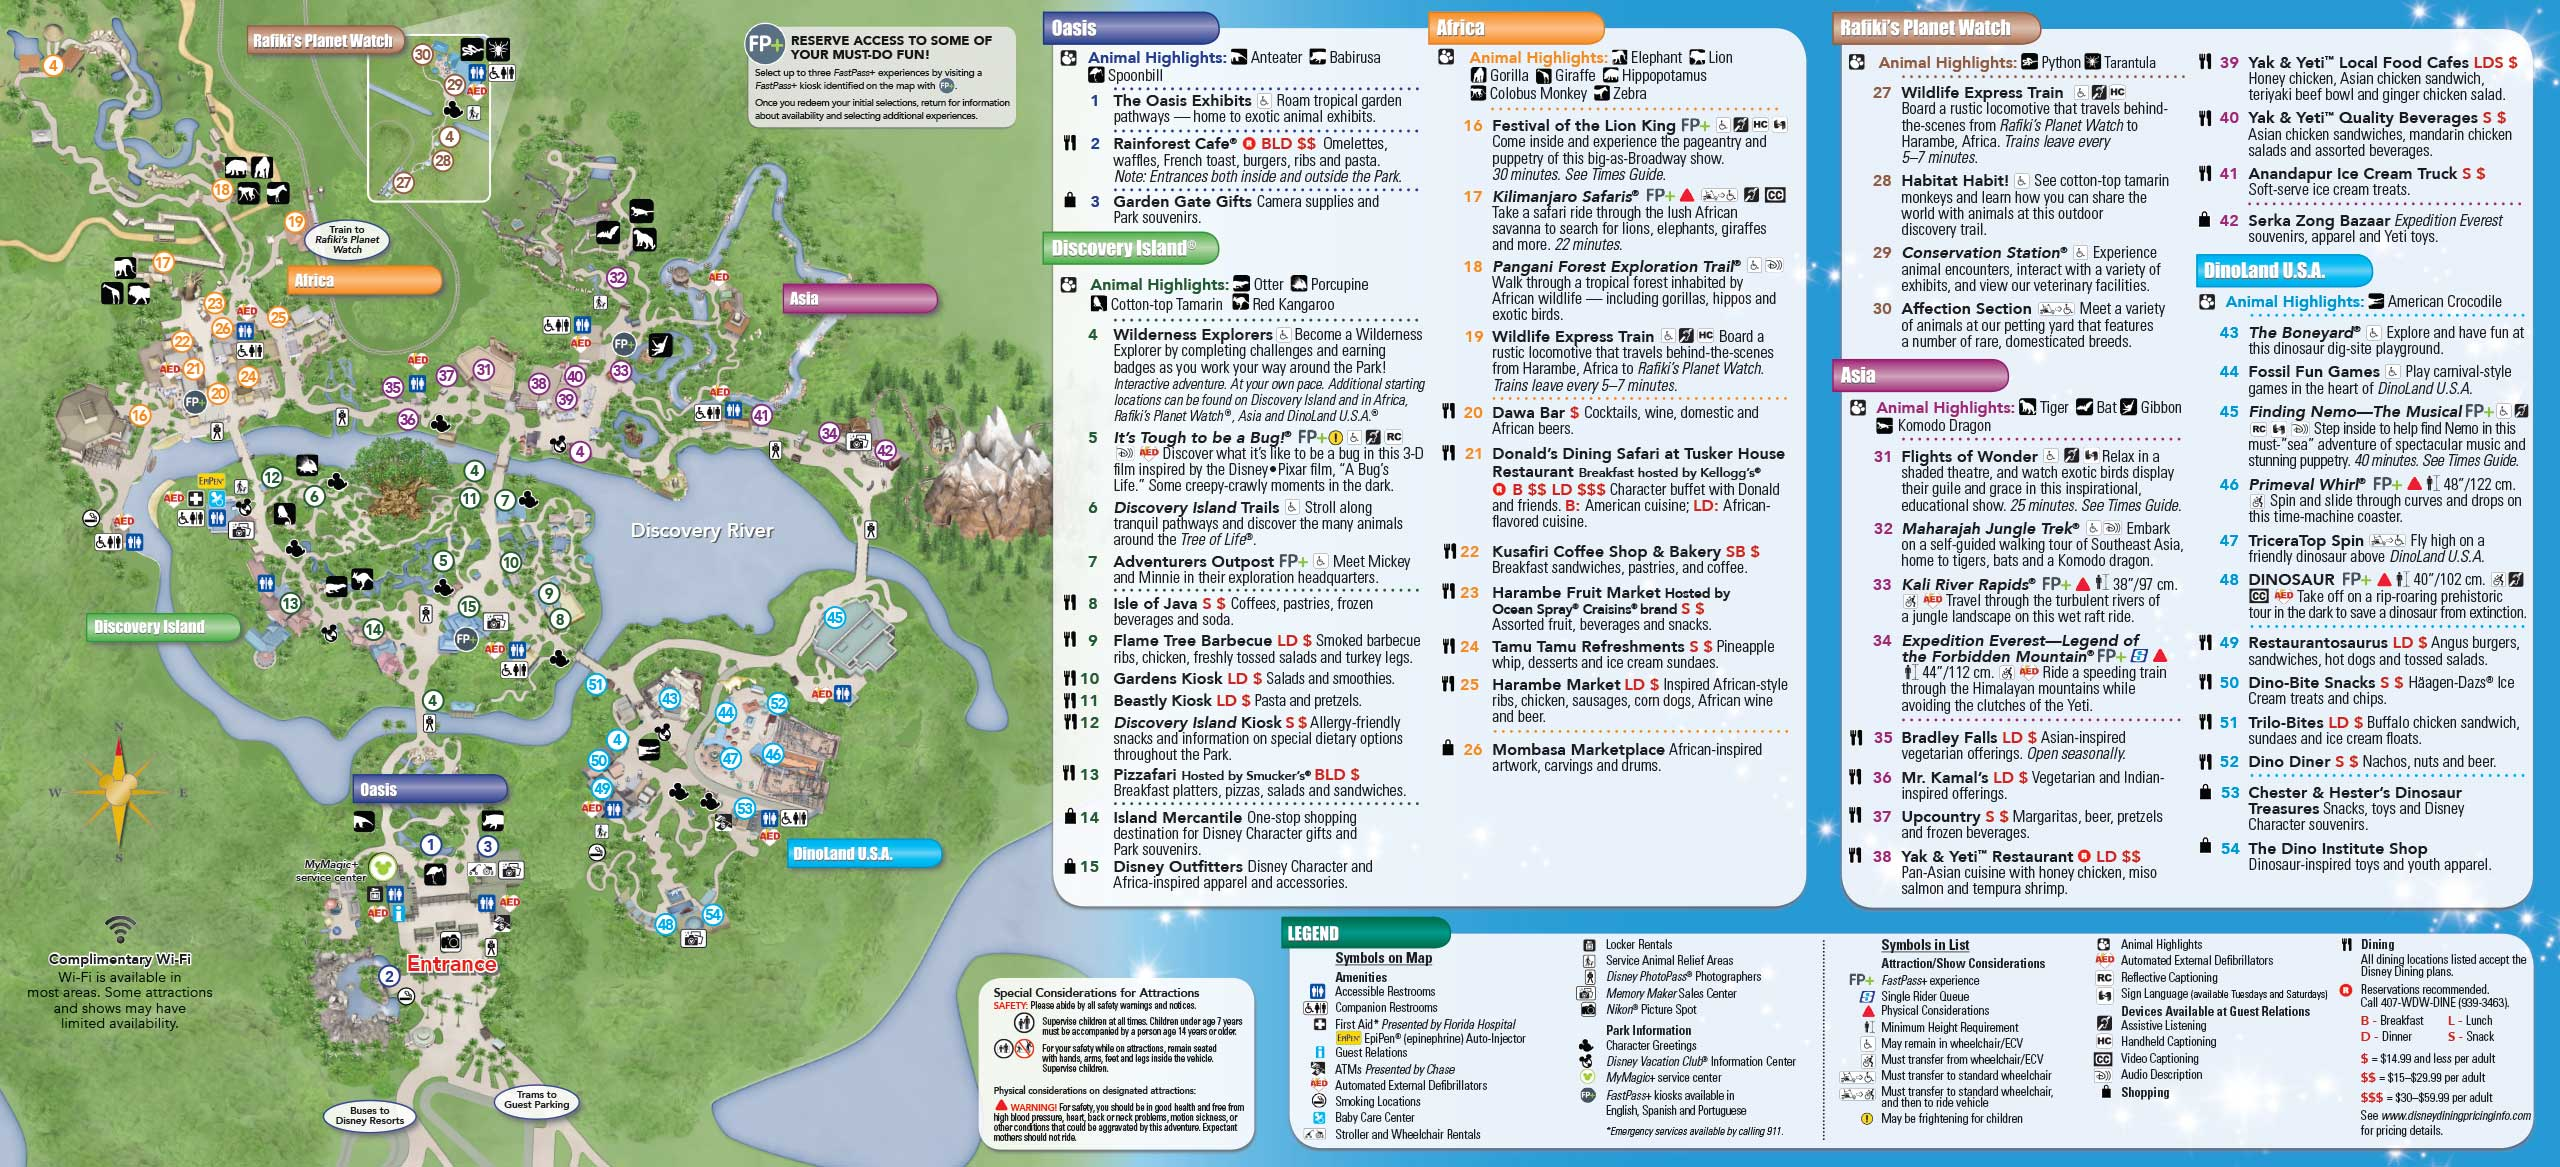 May 2015 Walt Disney World Resort Park Maps Photo 1 Of 14 - 2560x1167 ...